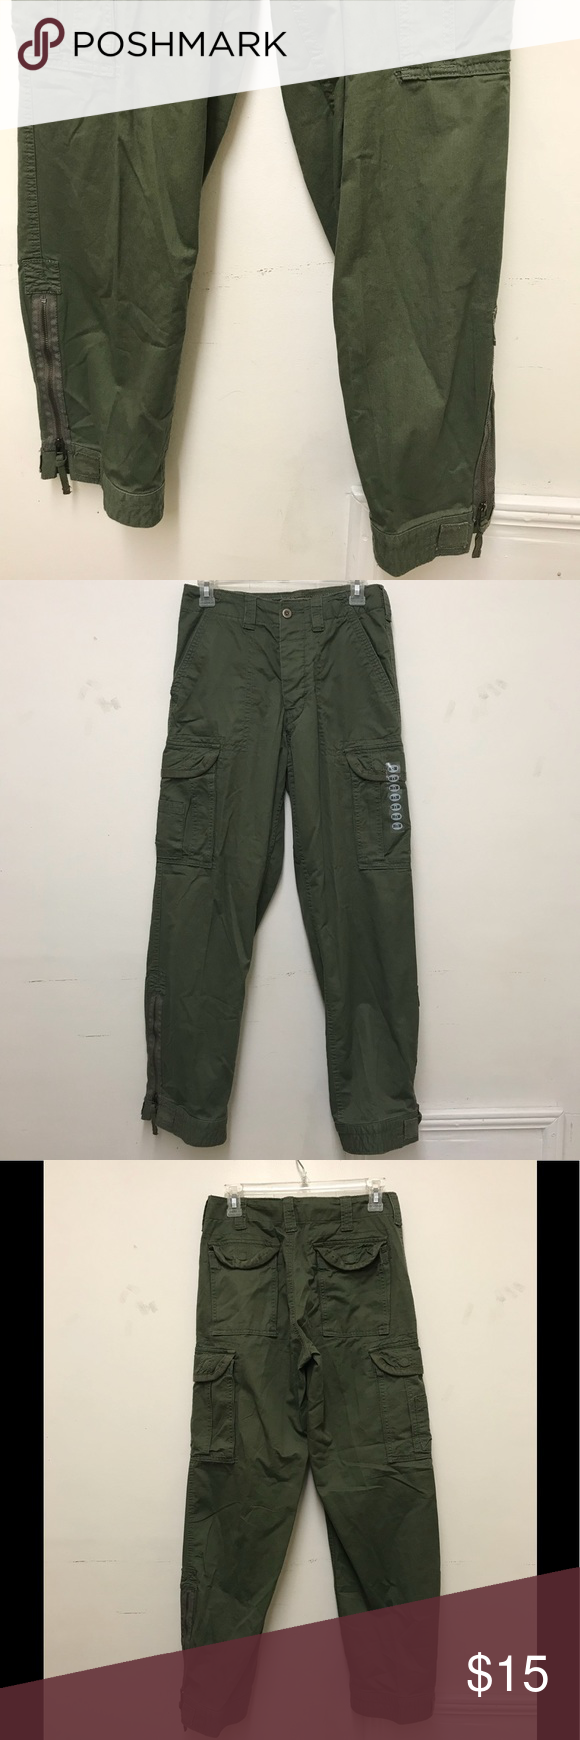 a854396187 28 x 30. Button fly. 6 pockets. Adjustable leg flare with zipper. New with  out tags. Austin Clothing Co. Pants Cargo